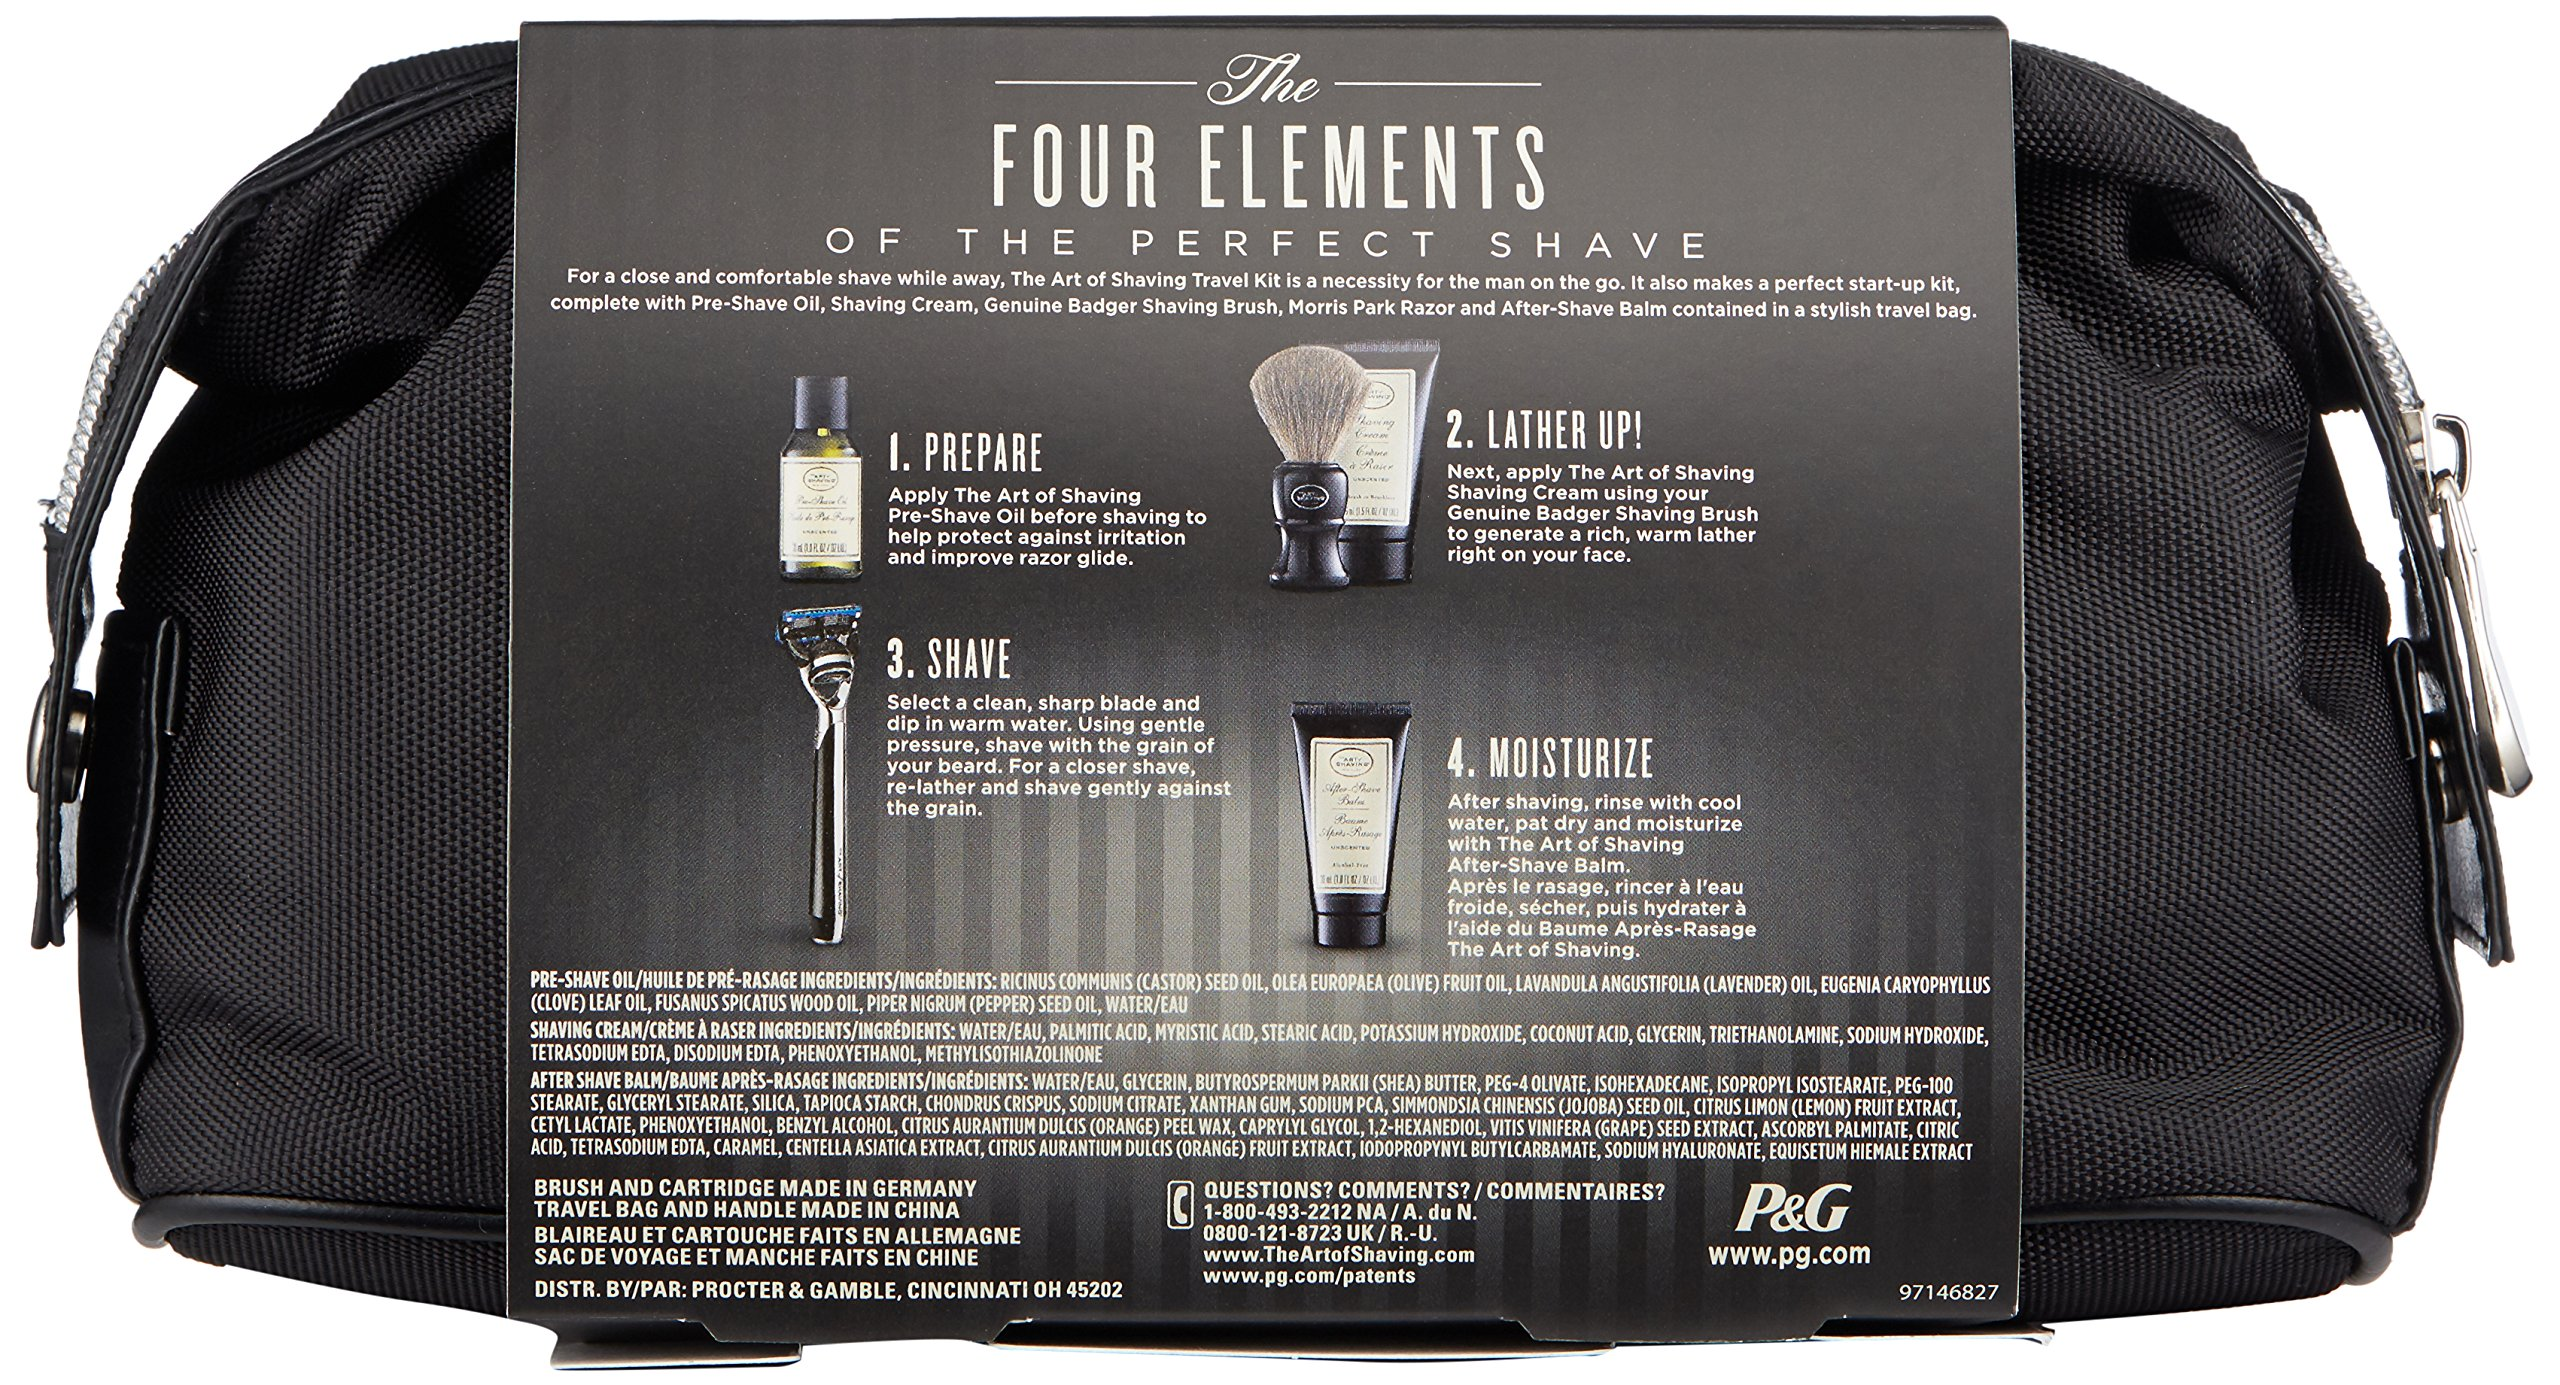 The Art of Shaving 5 Piece Travel Kit with Morris Park Razor, Unscented by The Art of Shaving (Image #1)